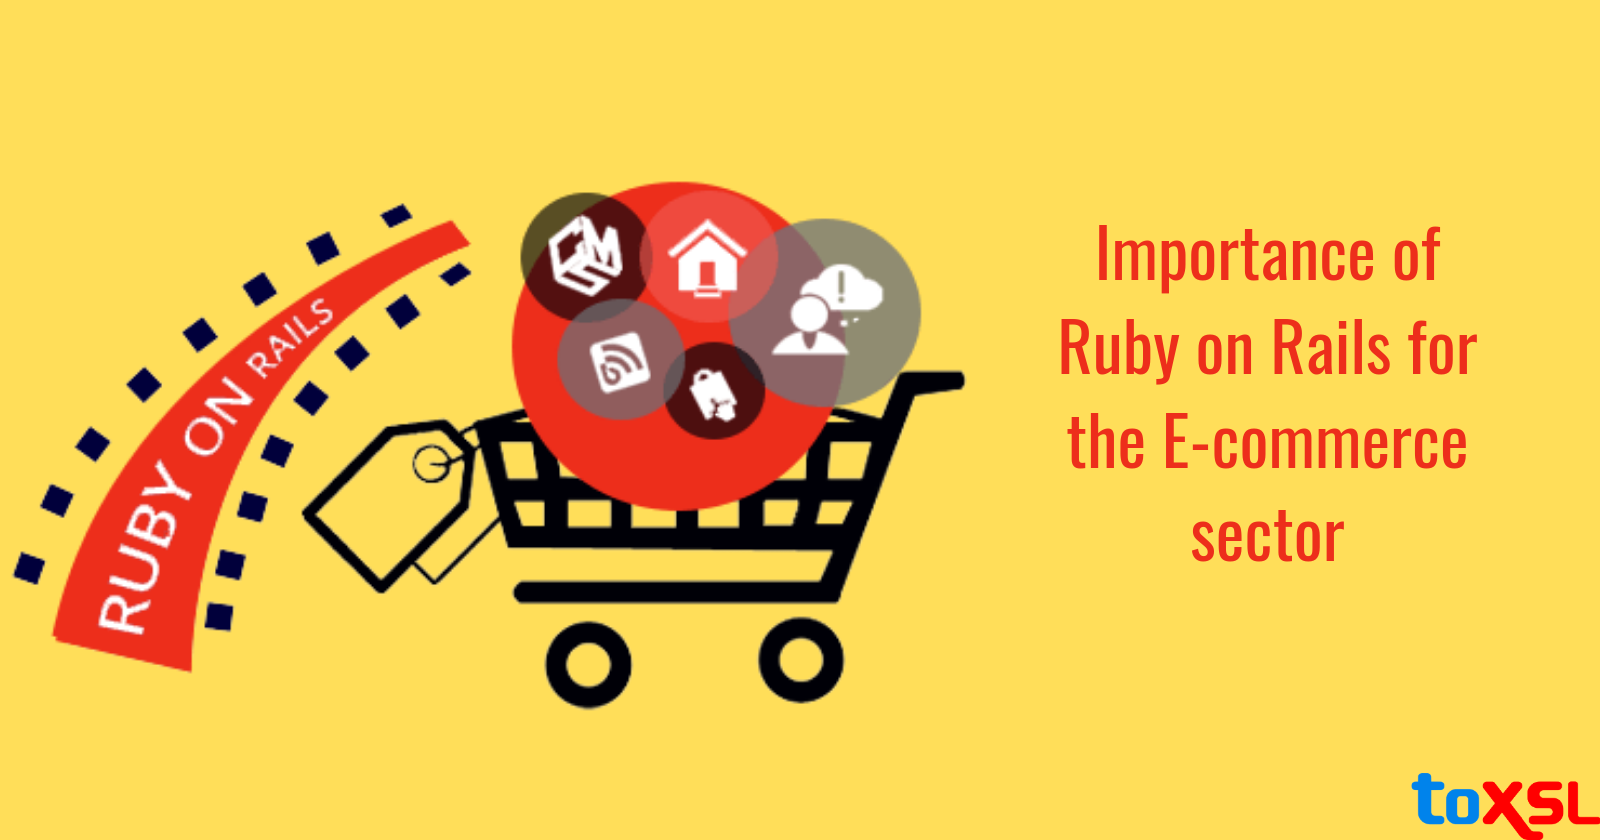 Top Reasons To Use RoR For E-commerce Development